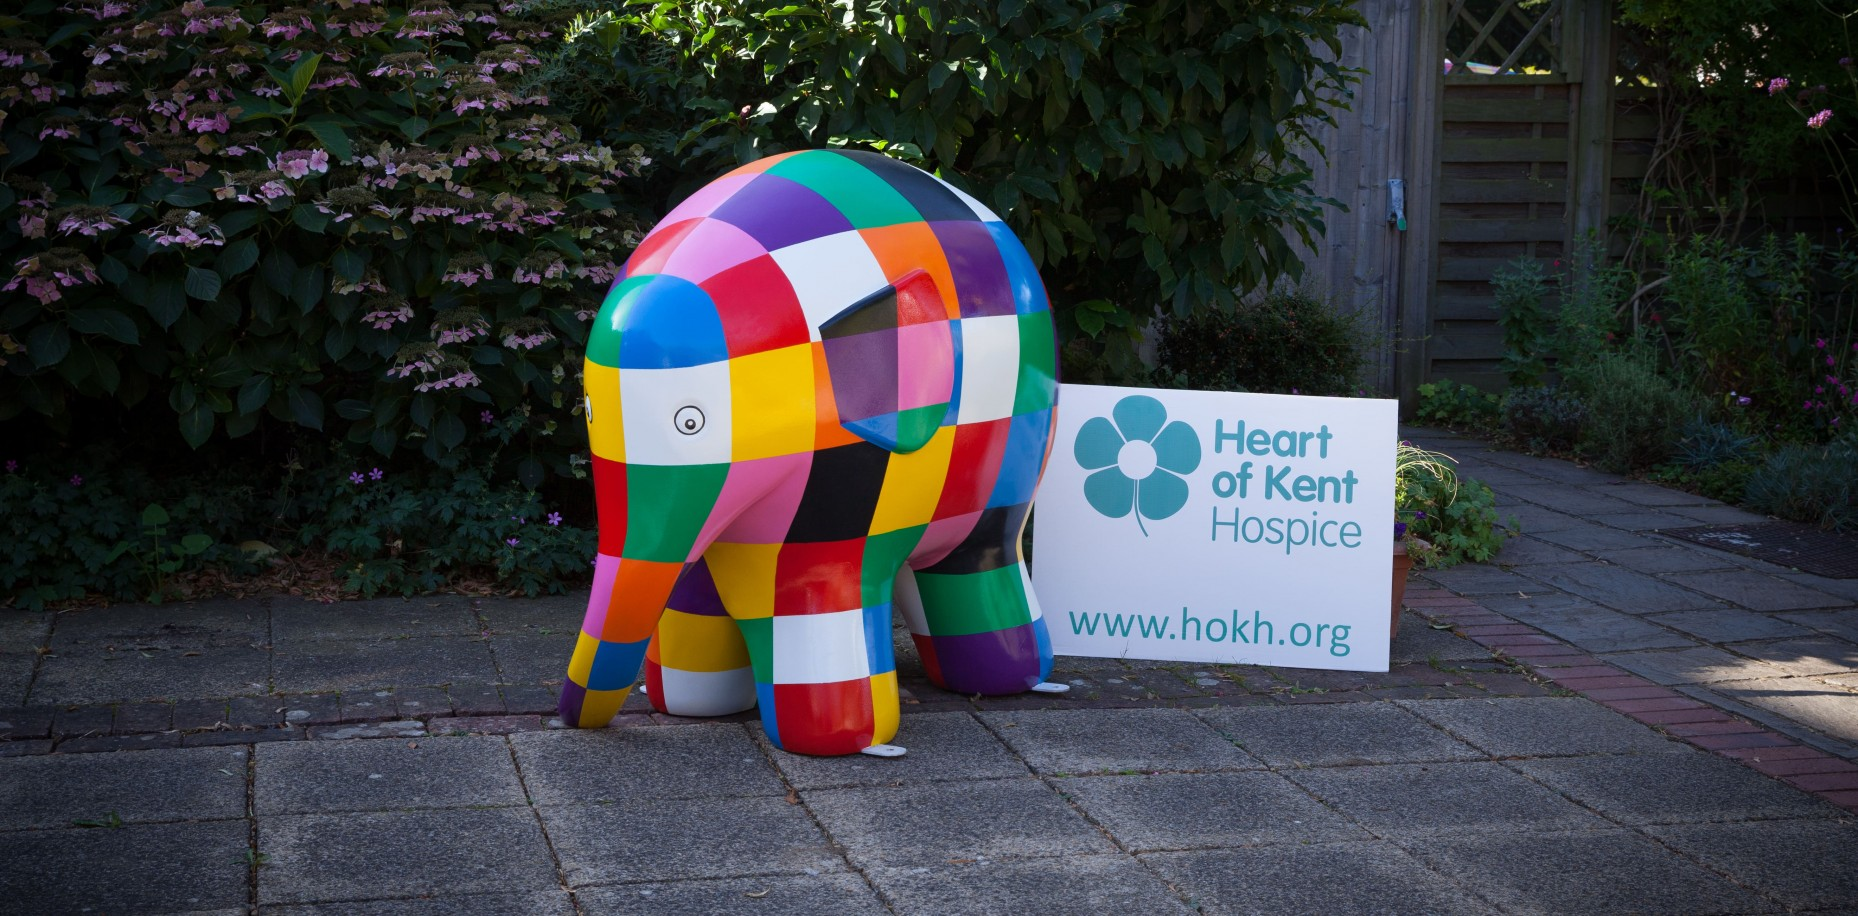 Only 10 more days until Elmer's Big Heart of Kent Parade launches in Maidstone